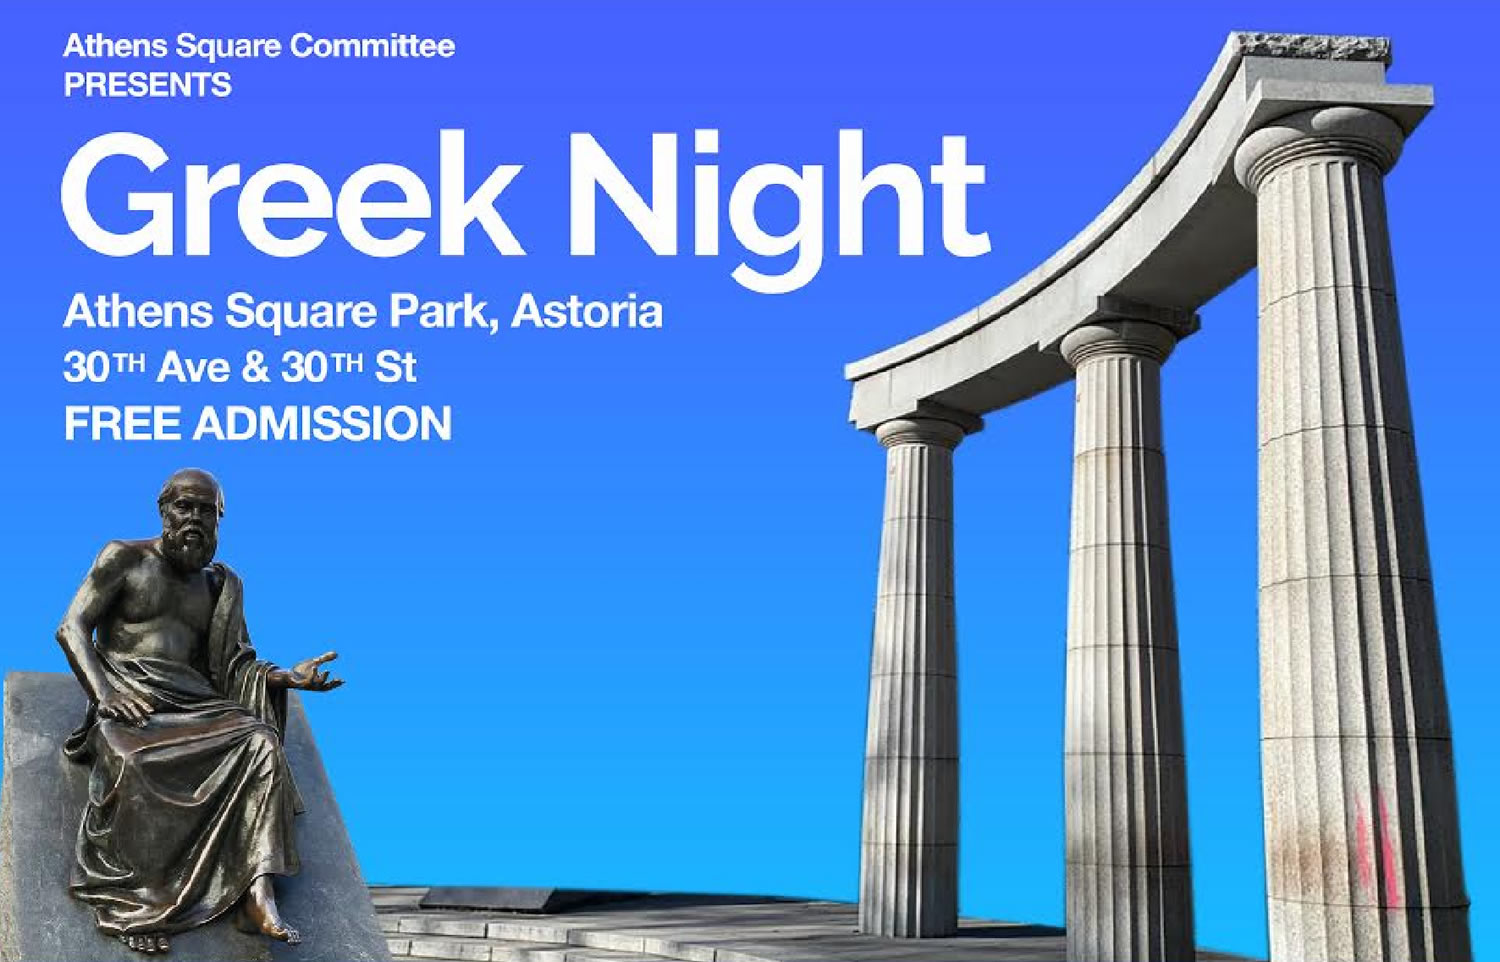 Greek Night In Athens Square Park Every Tuesday